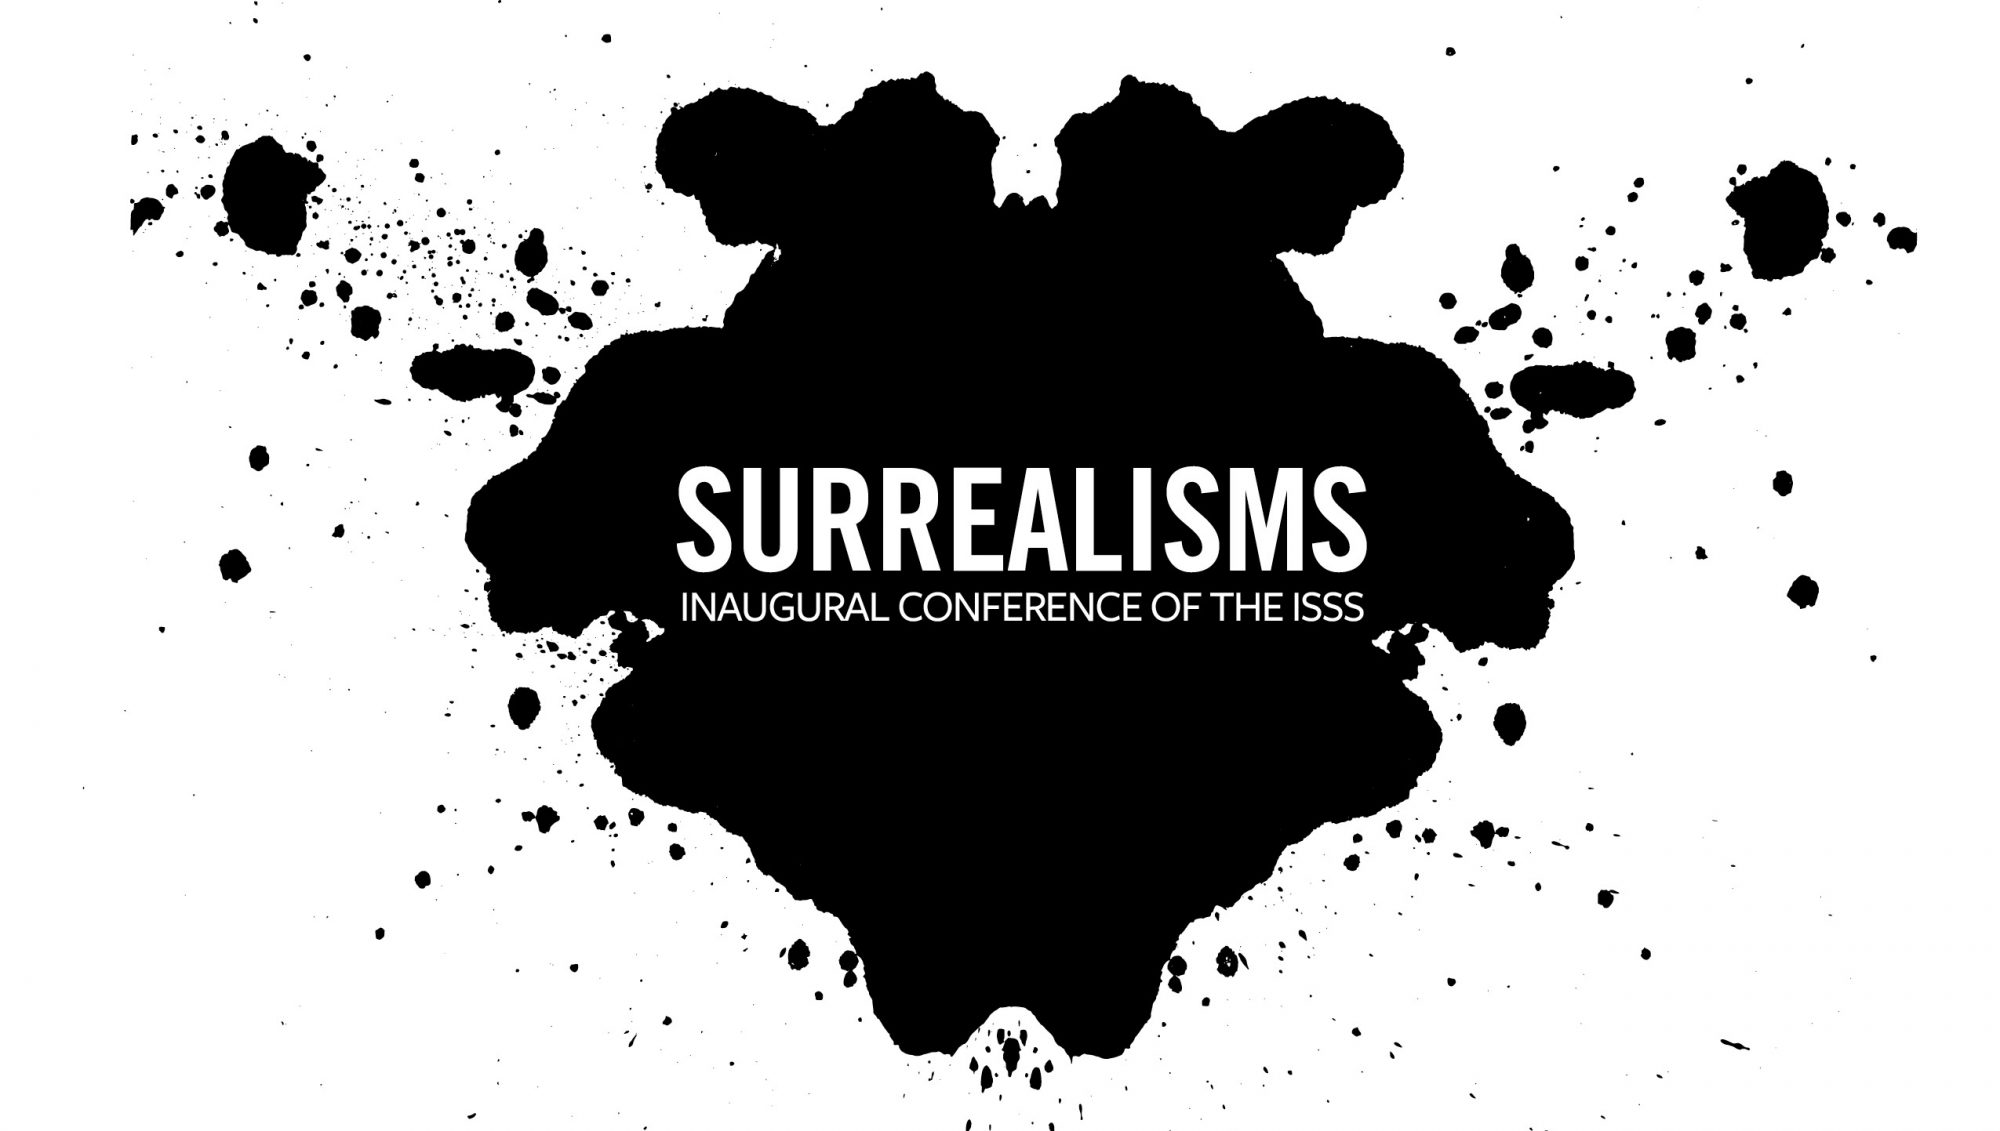 Surrealisms